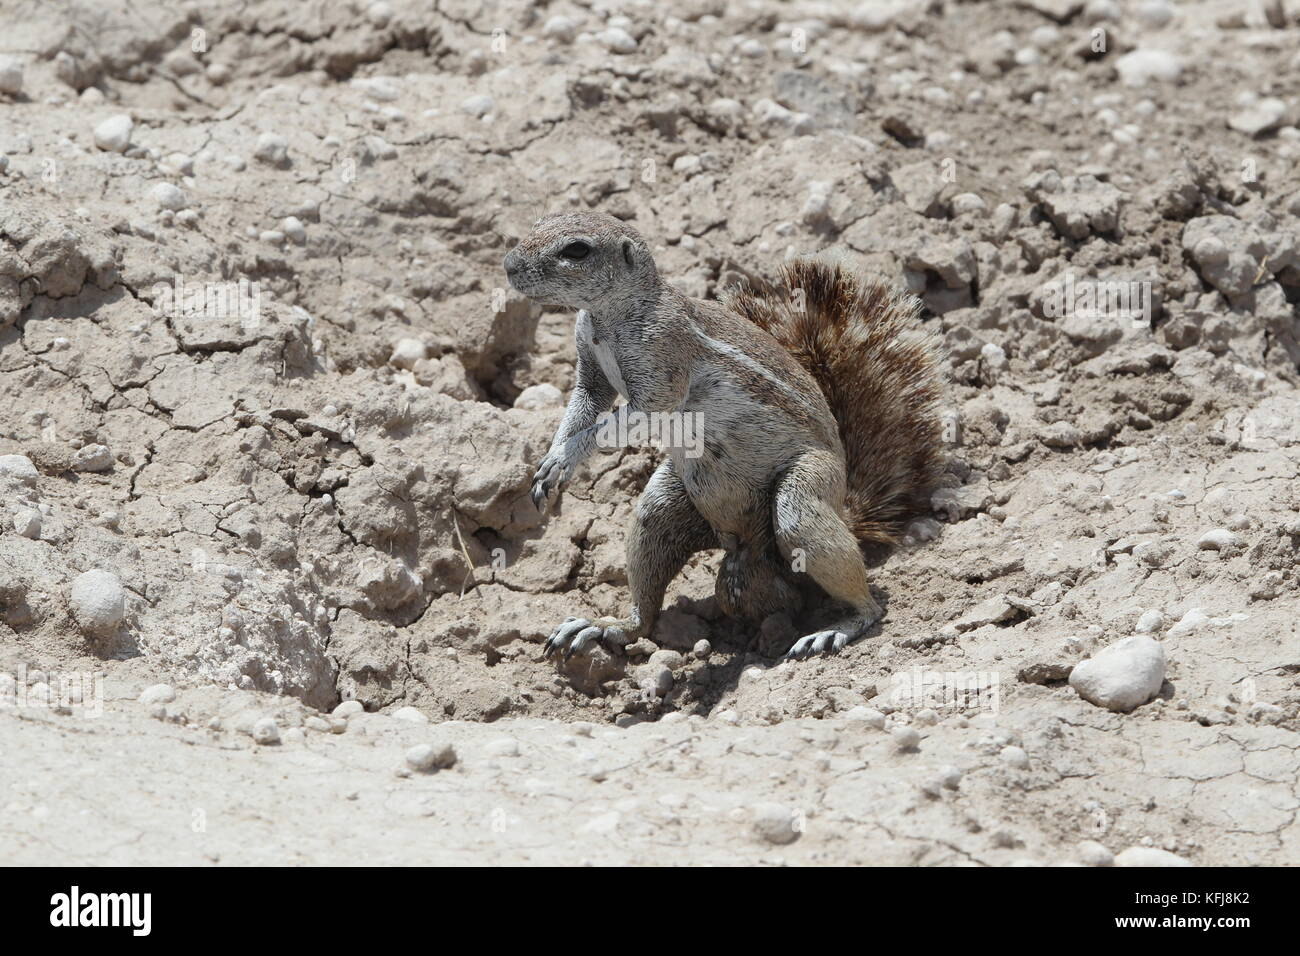 A ground squirrel pauses for a photo along the roads near Leeubron in Okaukeujo Camp in Etosha National Park on - Stock Image